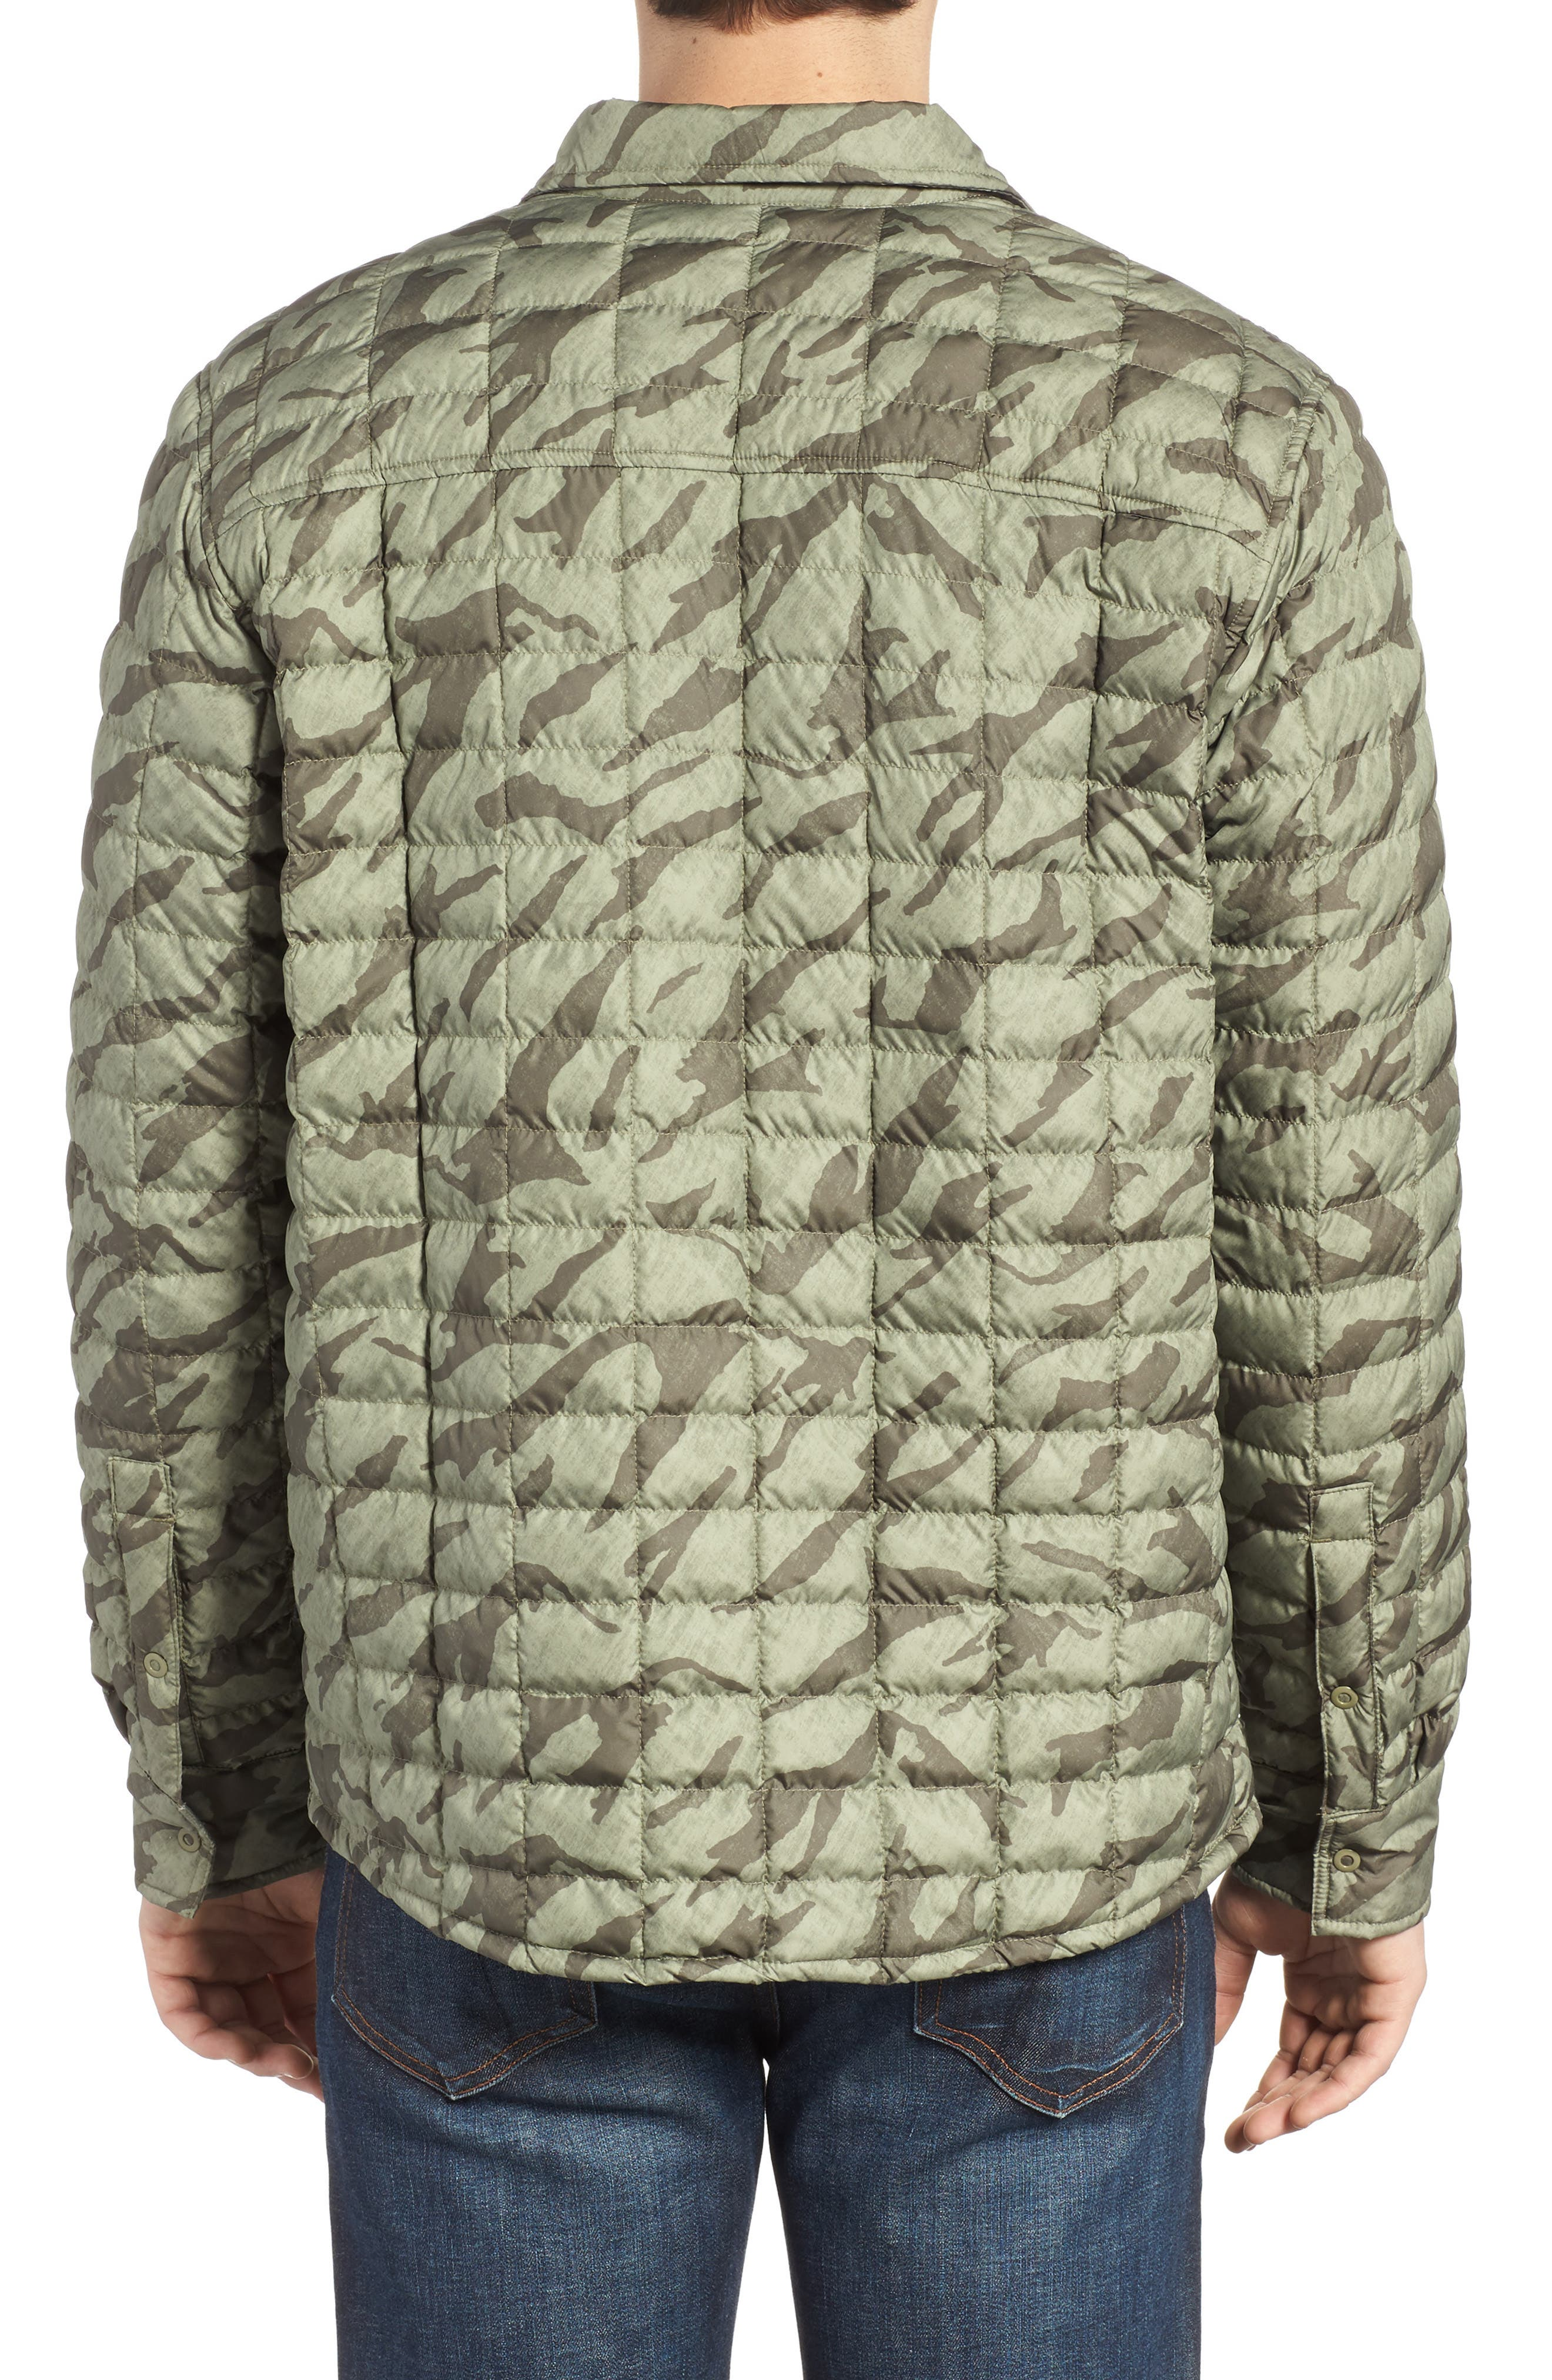 Reyes ThermoBall Shirt Jacket,                             Alternate thumbnail 2, color,                             Deep Lichen Green